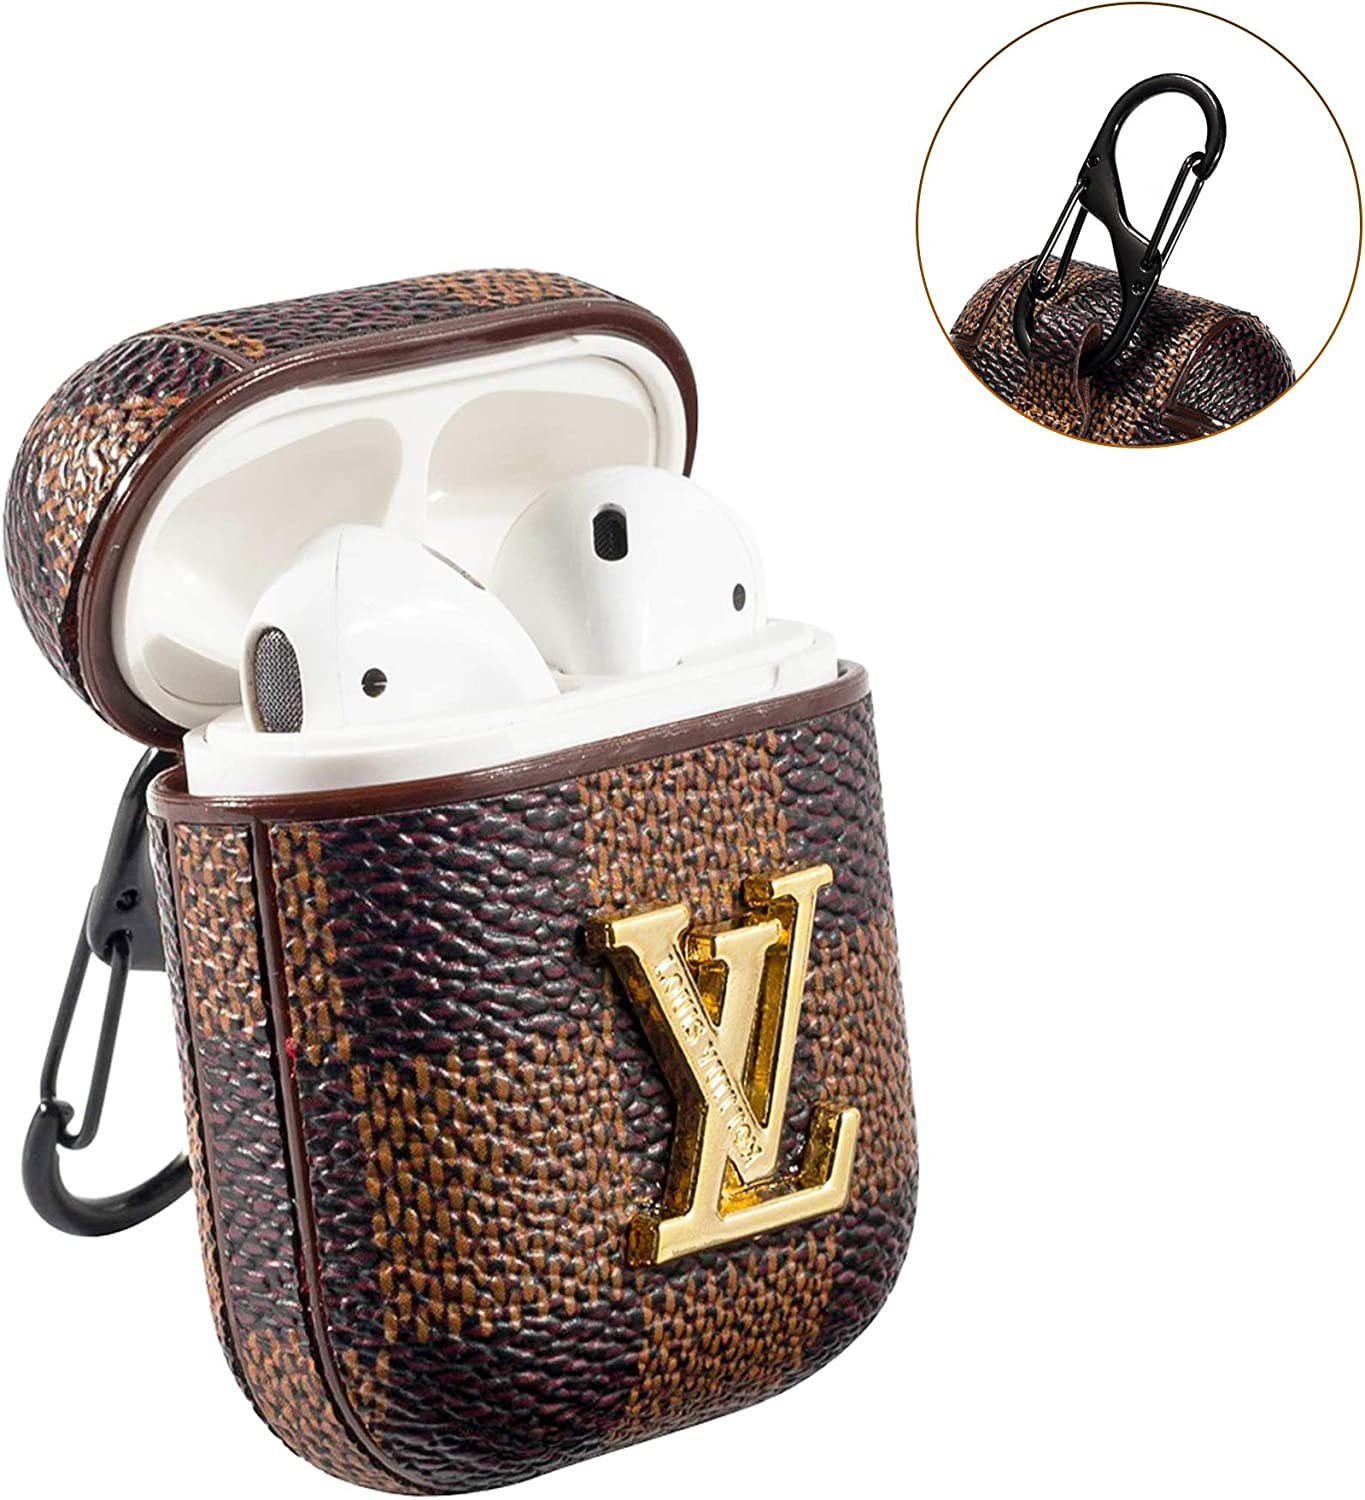 for App le Air pods 1 and 2 Air pods Case Cover Brown Big Logo Stylish,New Luxury Designer PU Leather Fashion Graphic Style,Suitable for Earphone Case Holster,